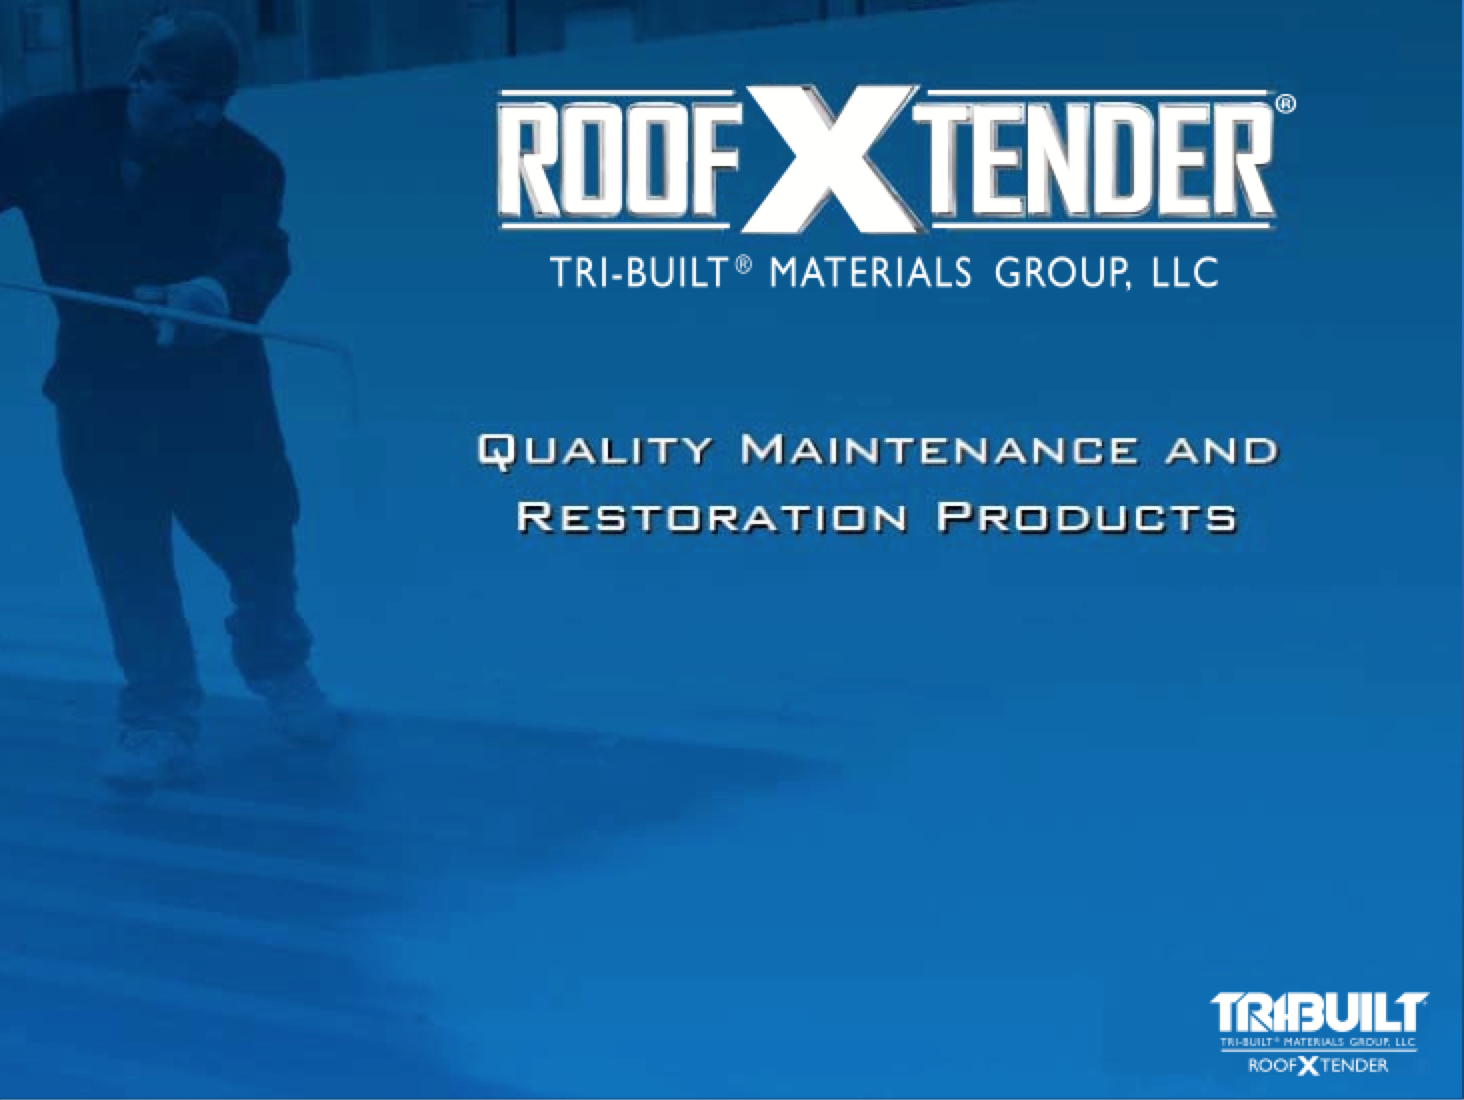 quality maintenance and restoration products